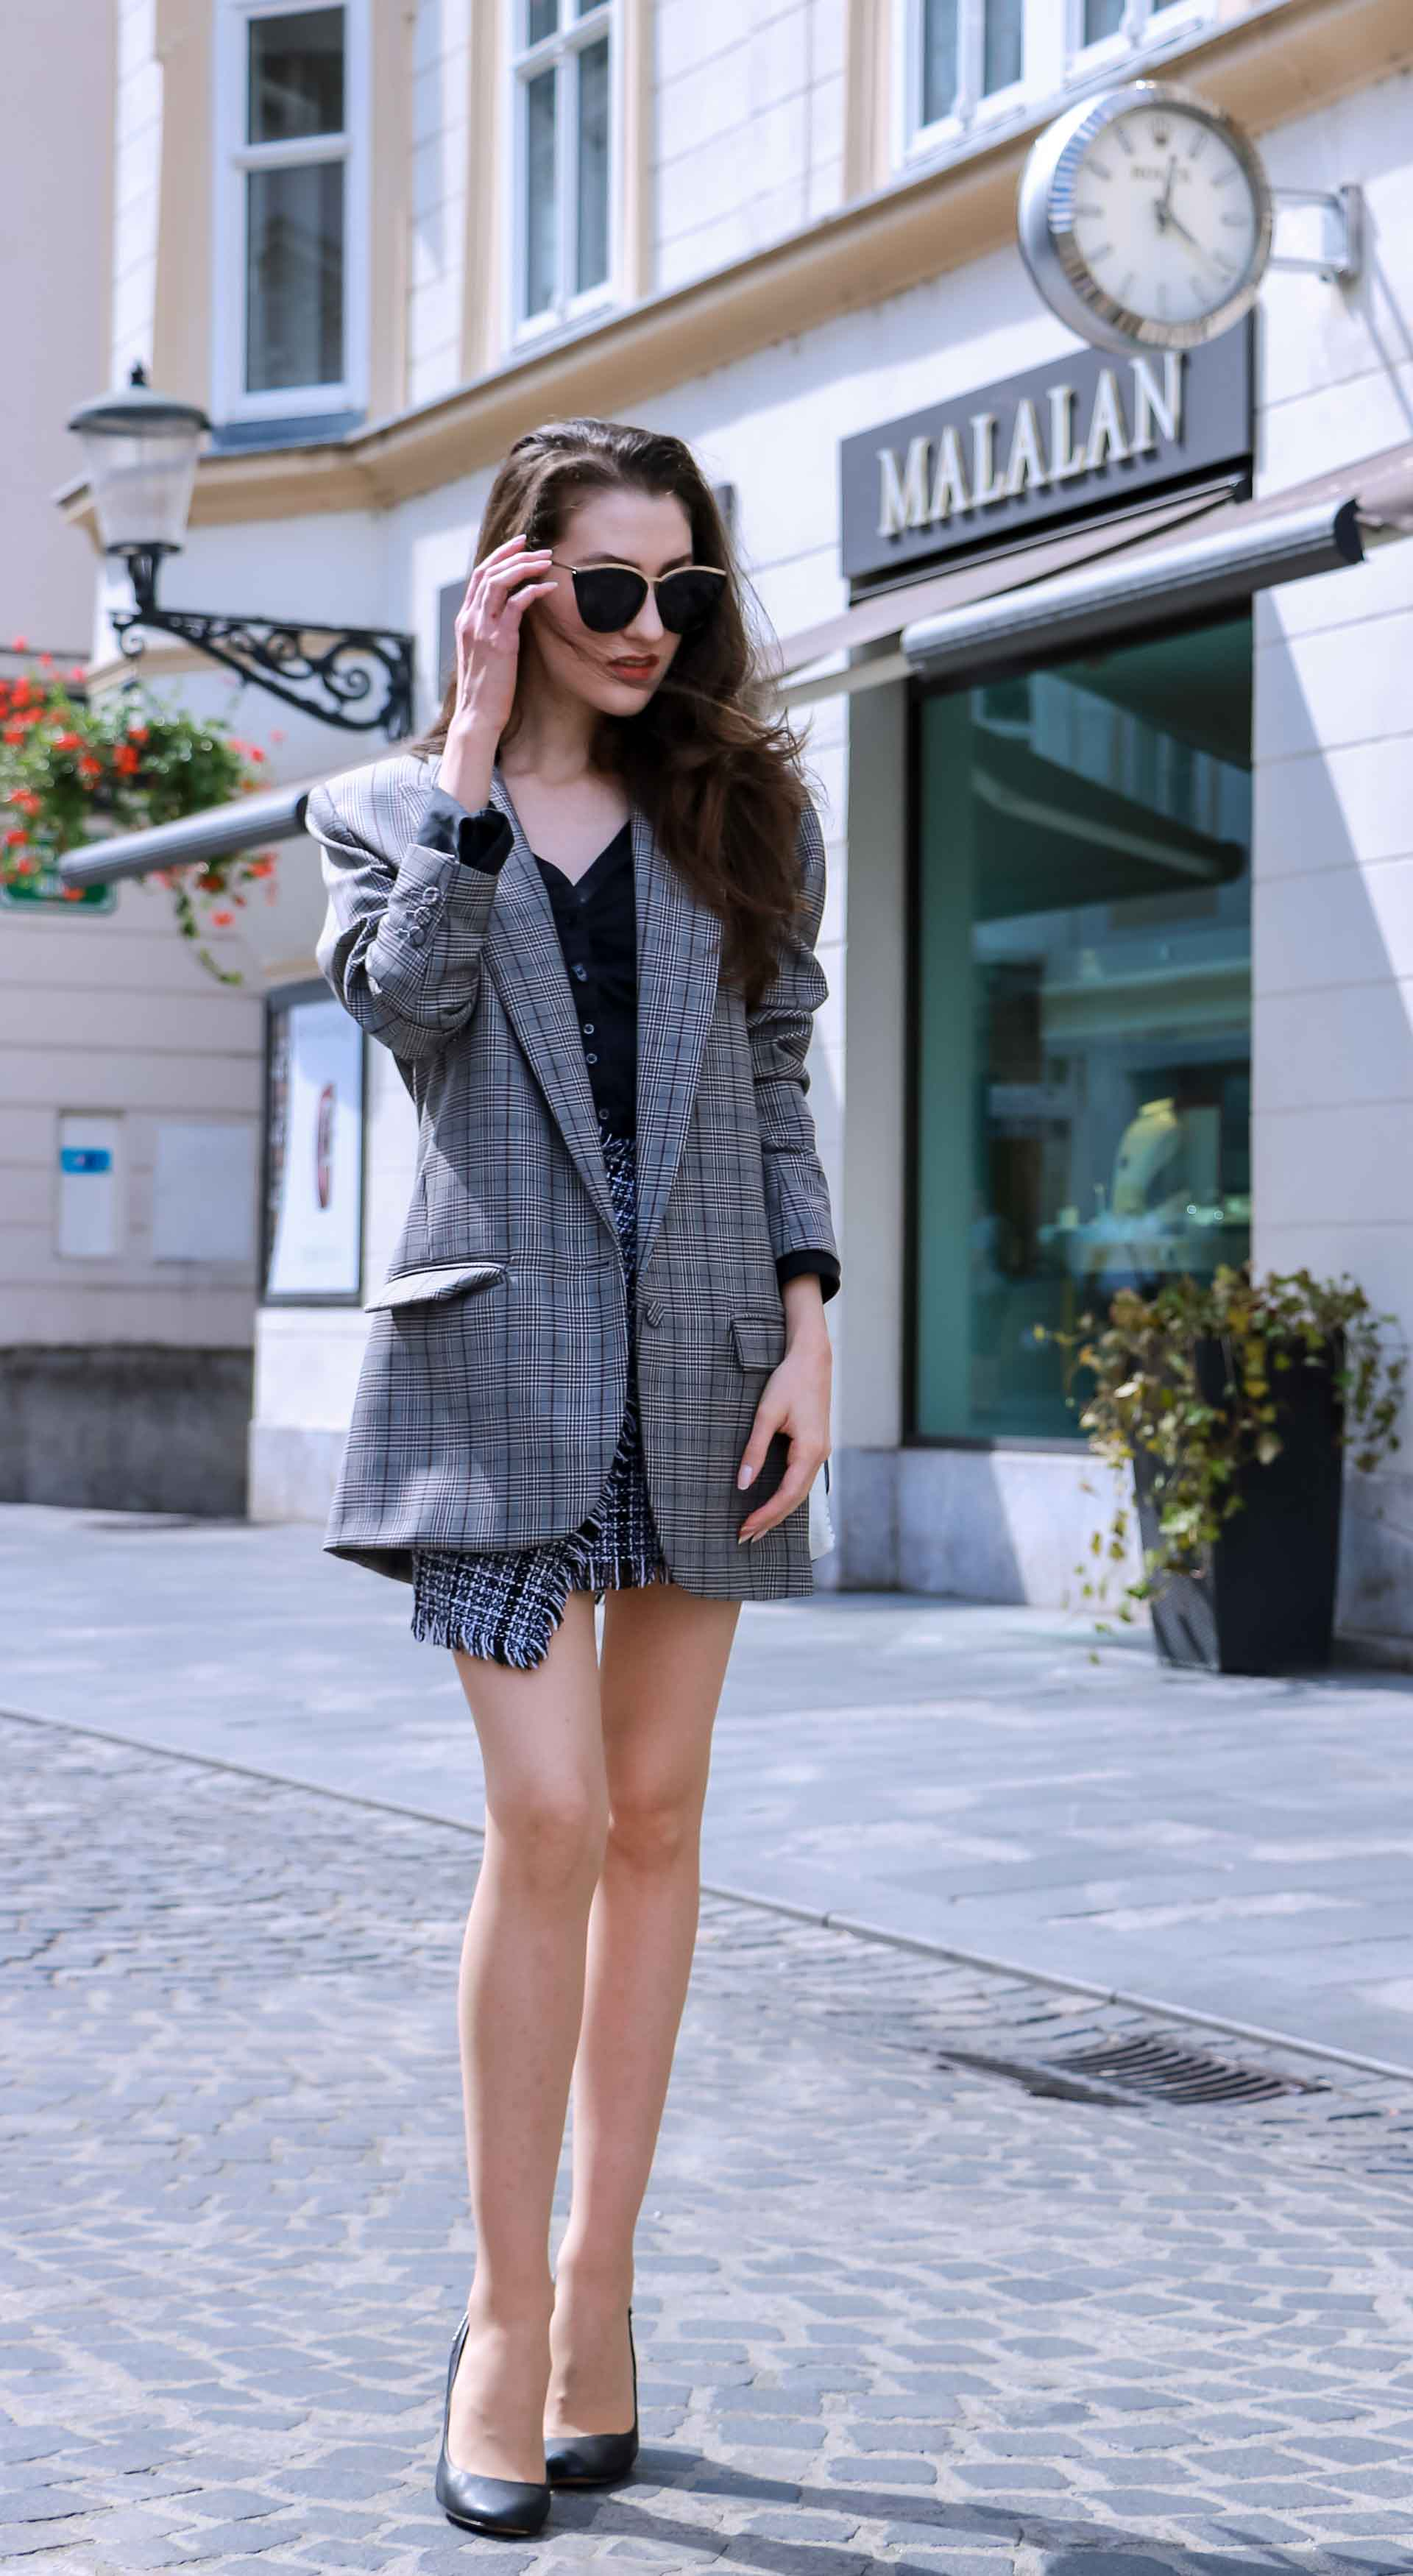 Fashion Blogger Veronika Lipar of Brunette from Wall Street dressed in Erika Cavallini oversized boyfriend plaid blazer with short tweed black and white mini skirt from streets, black pumps and white chain strap shoulder bag while standing down the street in Ljubljana